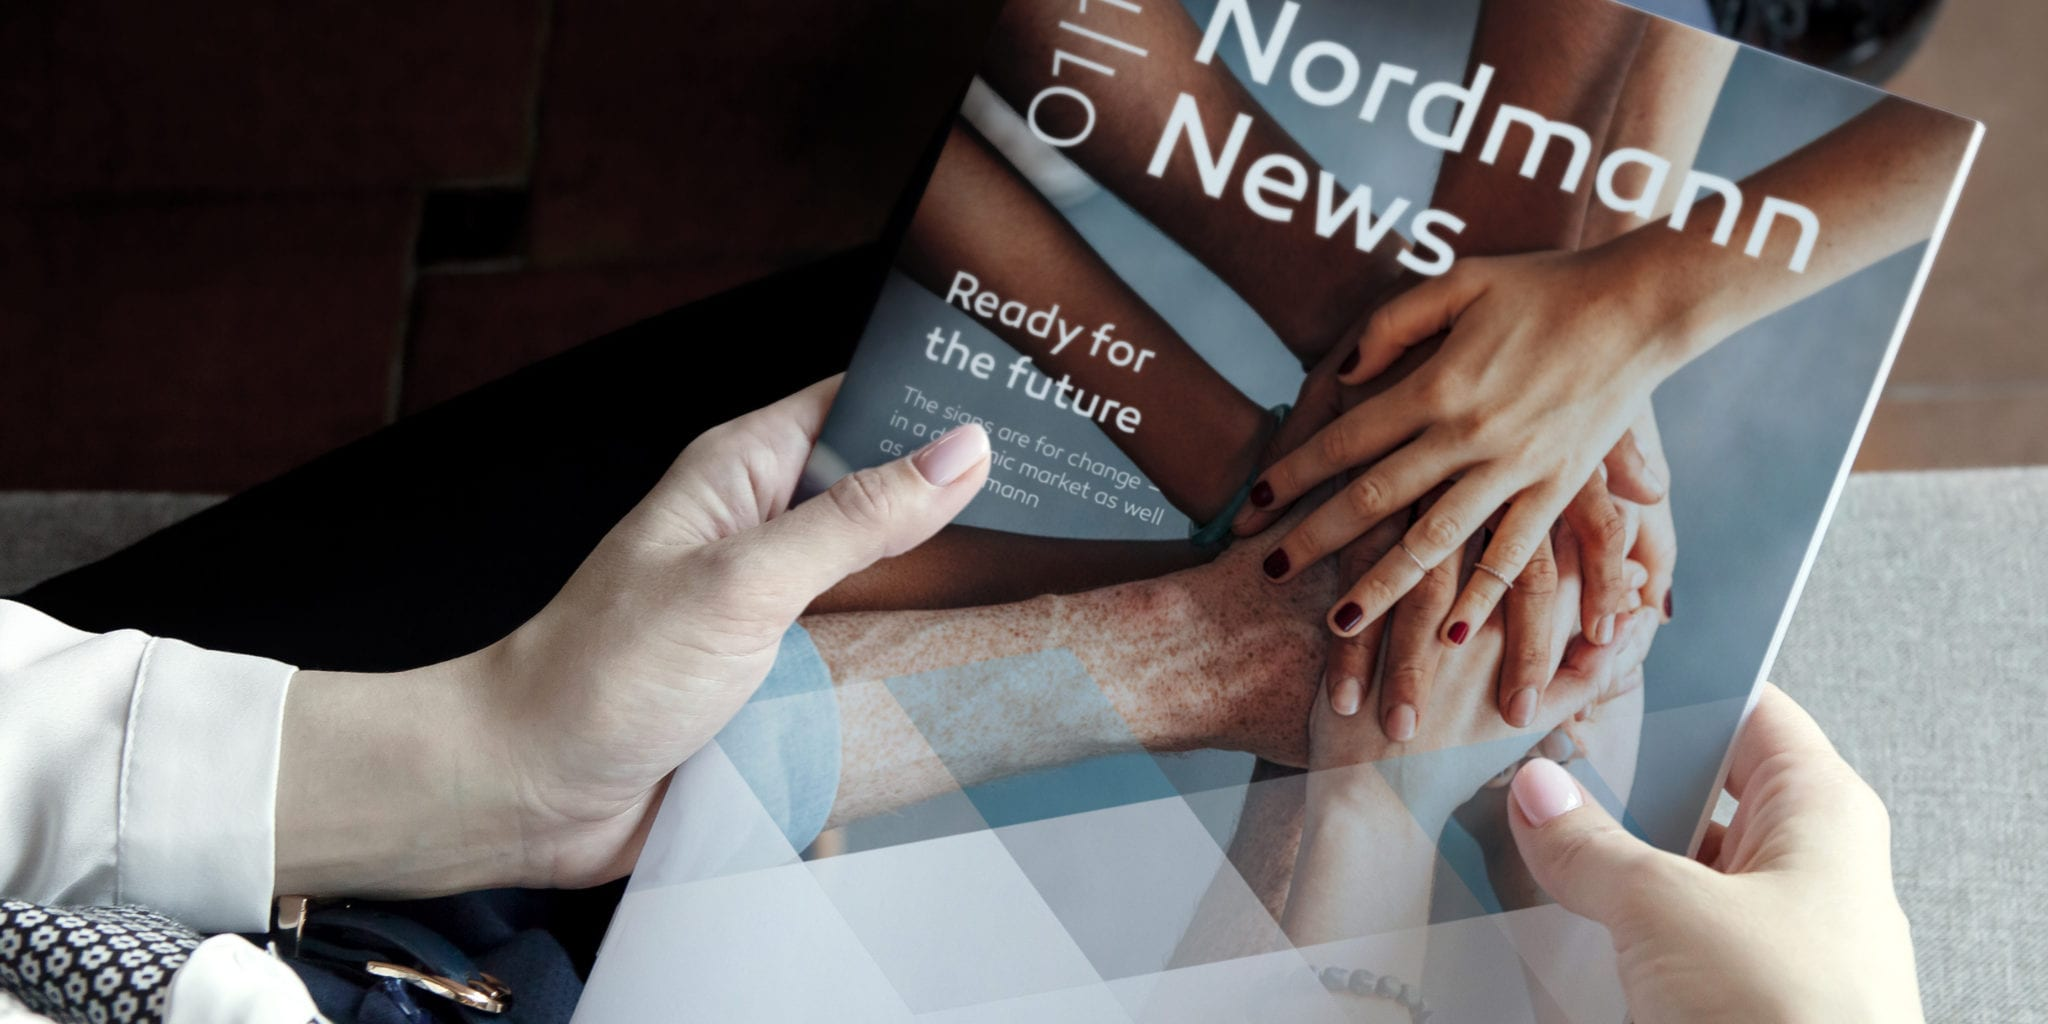 Normann News Magazin